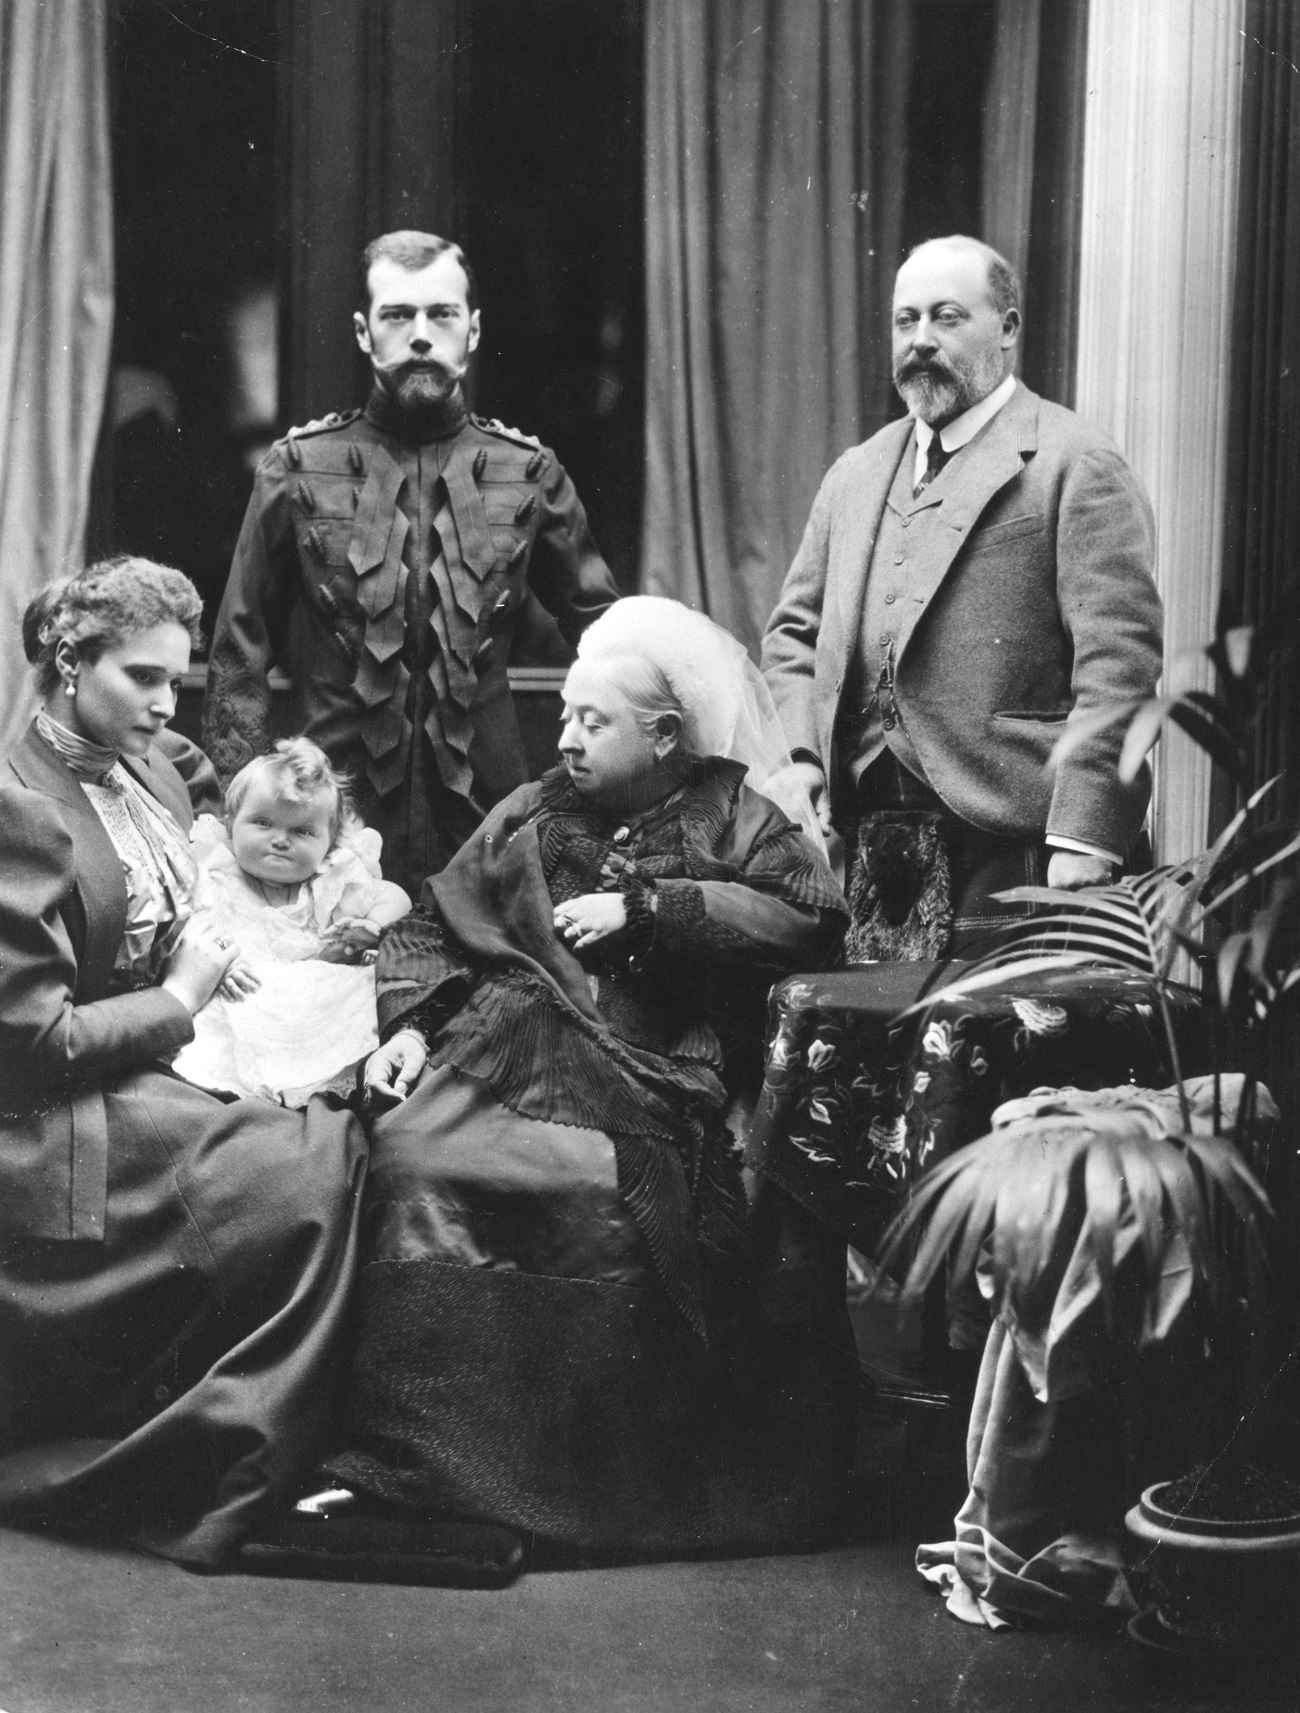 Tsar Nicholas II was appointed an honorary member of the Royal Scots Greys by Britain's Queen Victoria in 1894, after he became engaged to Alexandra Feodorovna (Princess Alix of Hesse), who was Victoria's granddaughter. // L-R: Tsarina Alexandra Feodorovna, Grand Duchess Tatiana, Tsar Nicholas II, Queen Victoria, and Edward, Prince of Wales. Balmoral, 1896.